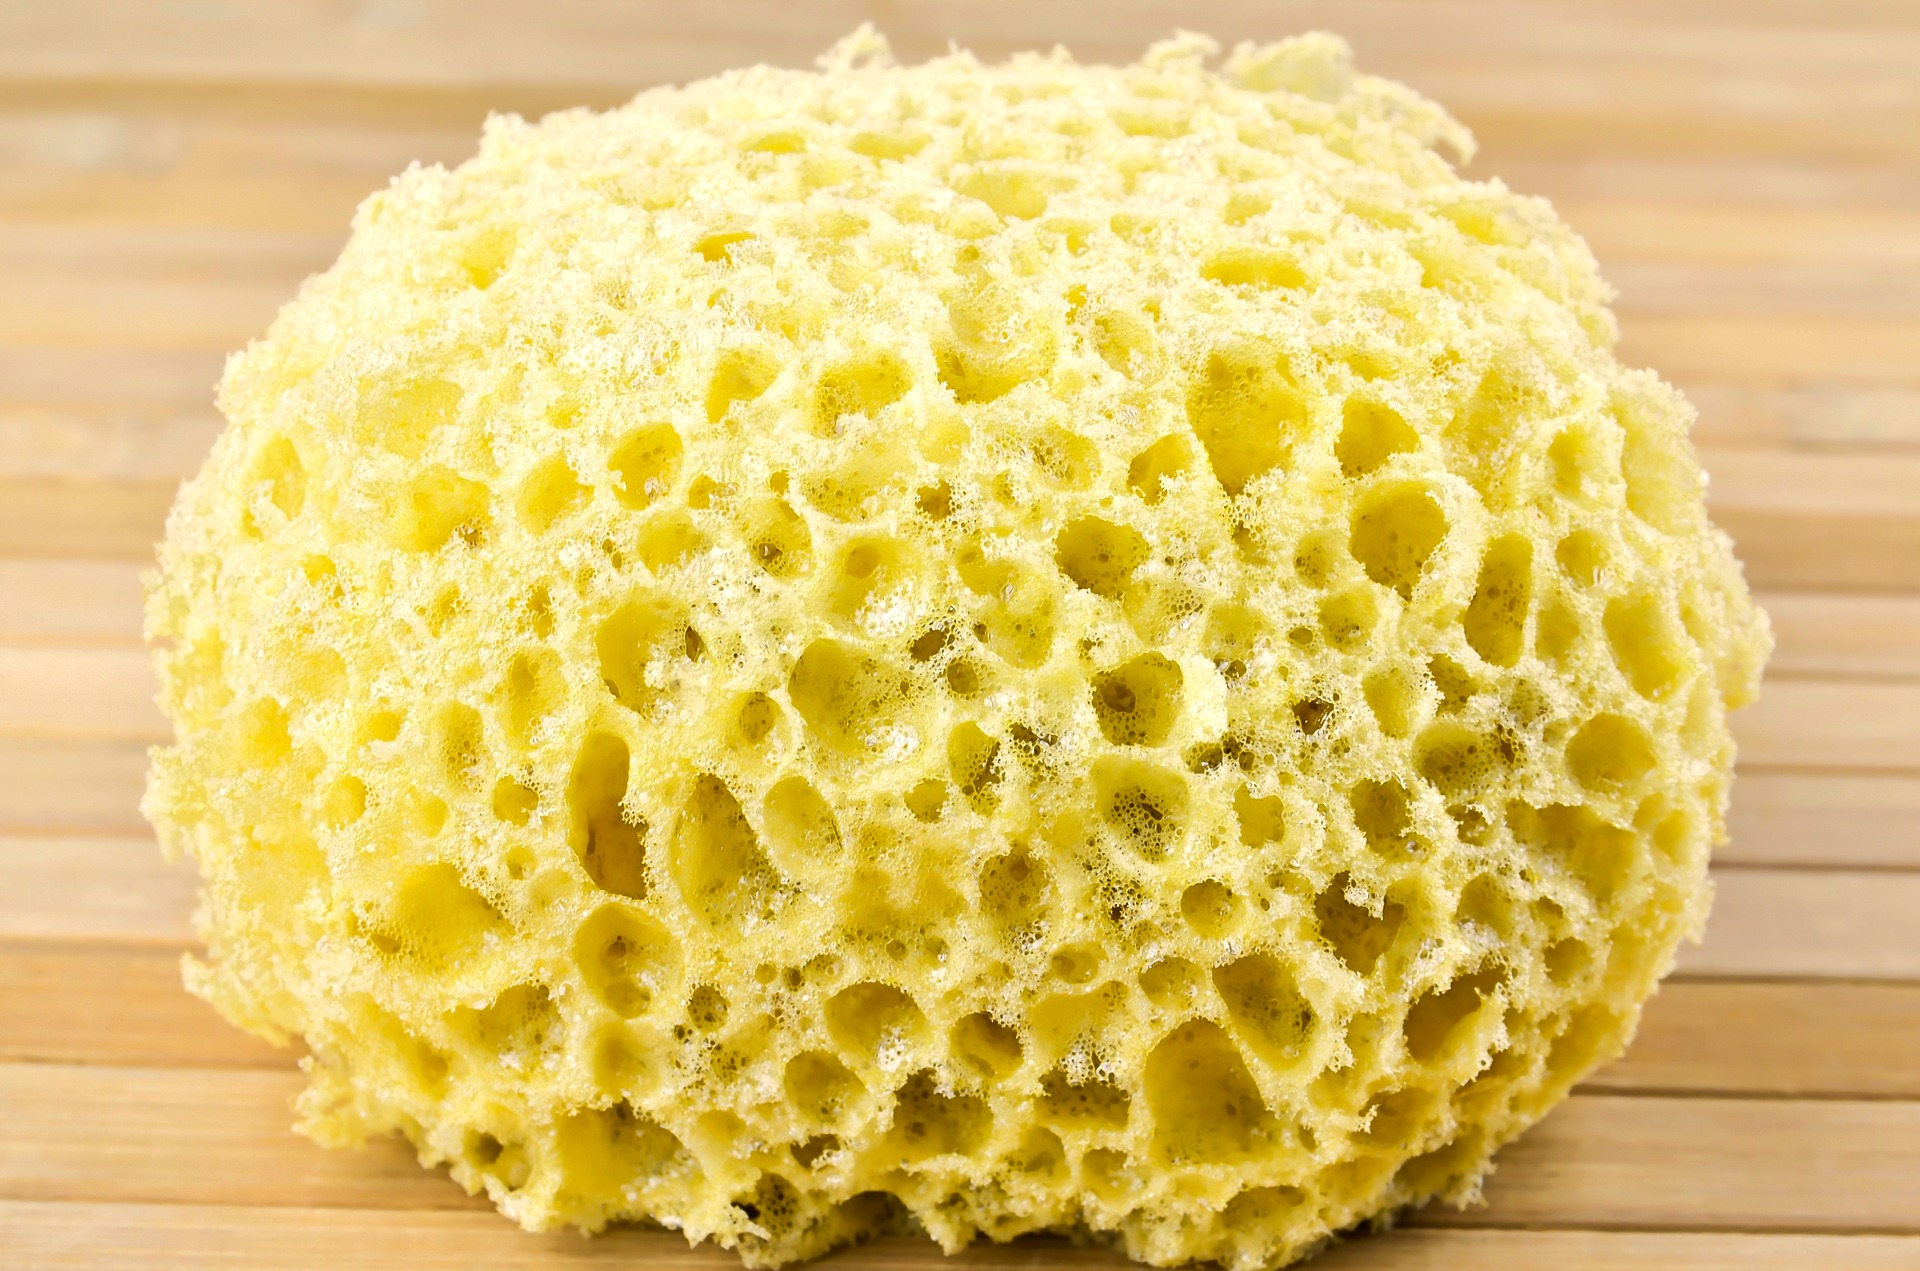 sponge-for-washing-1212612_1920.jpg